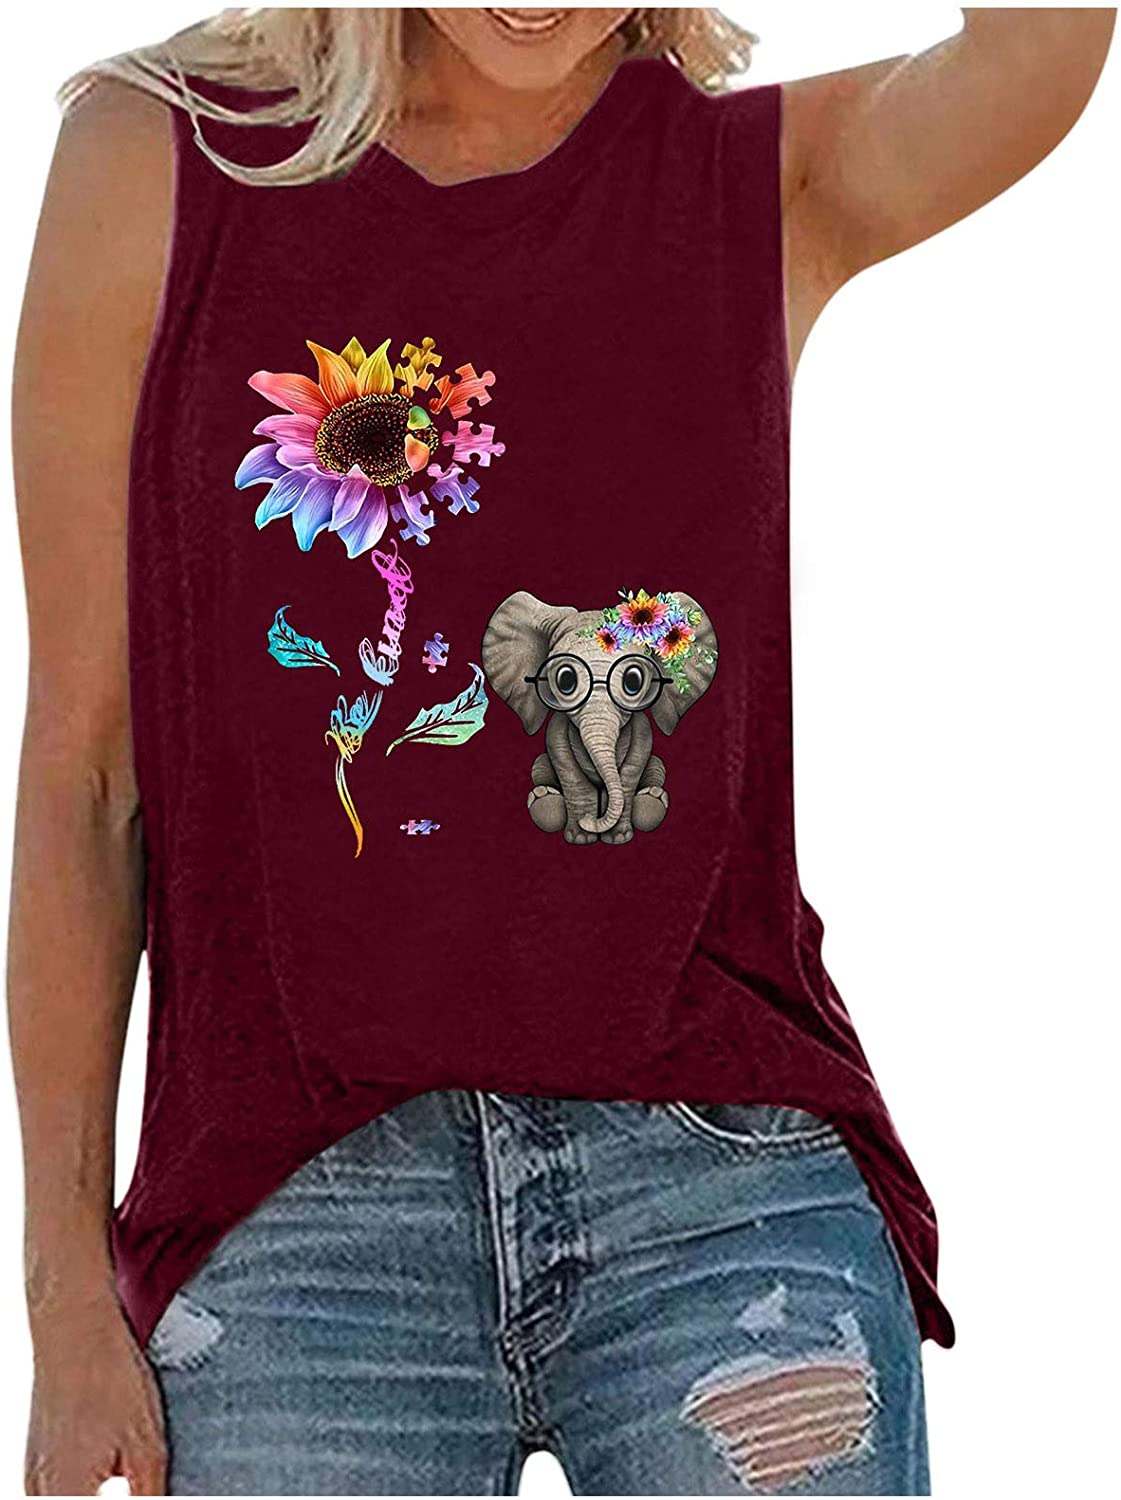 Tank Tops for Women,Womens Tops for Independence Day Women Sleeveless Tank Shirt Tunic